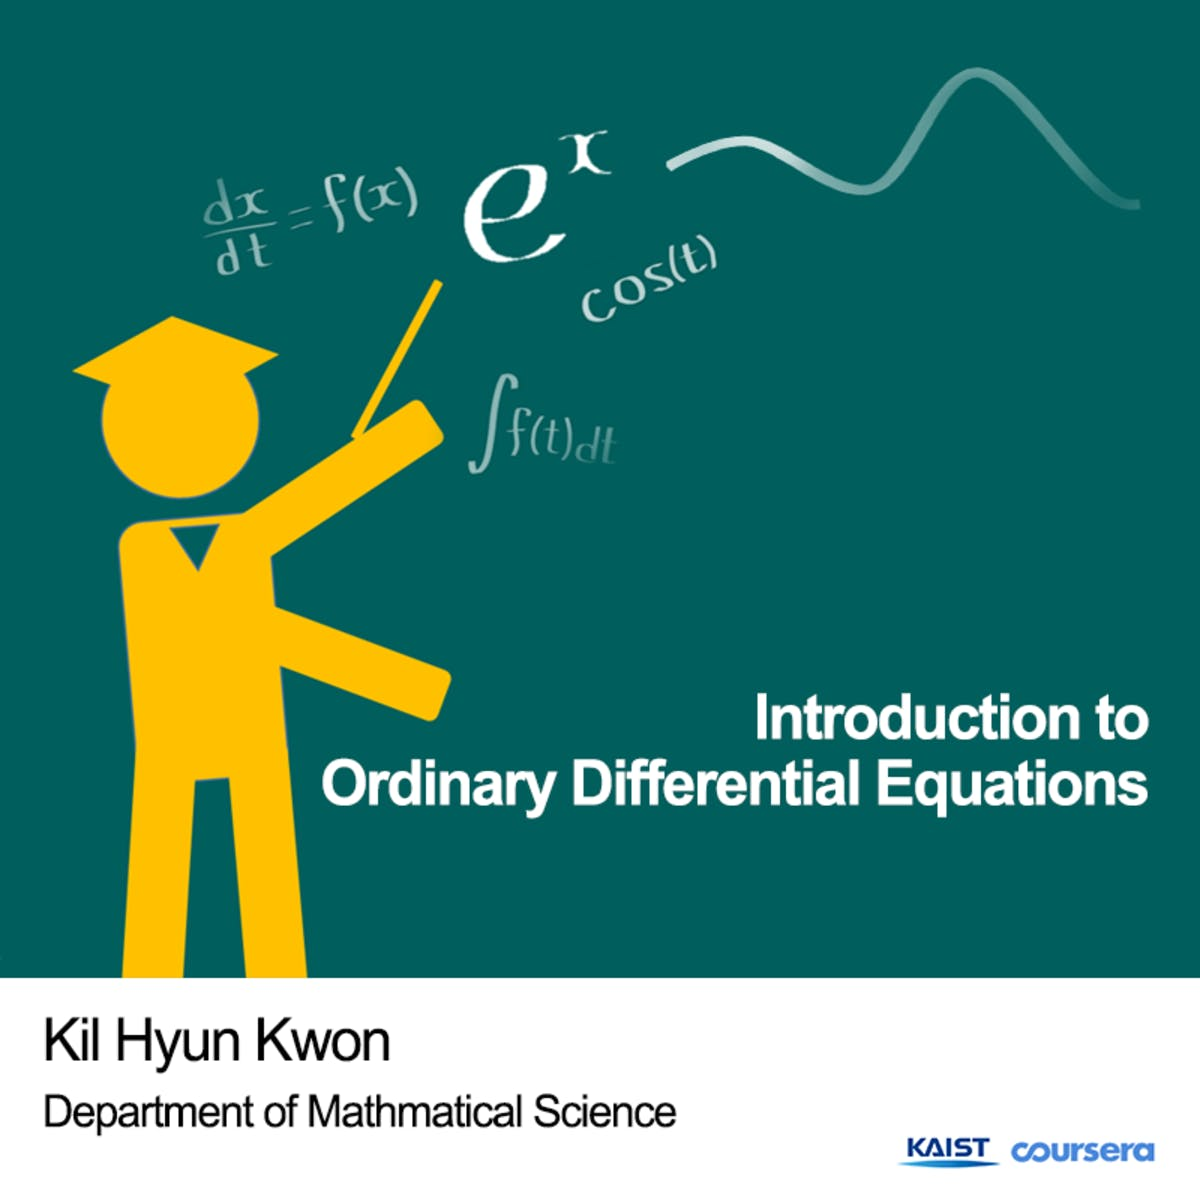 Introduction to Ordinary Differential Equations | Coursera